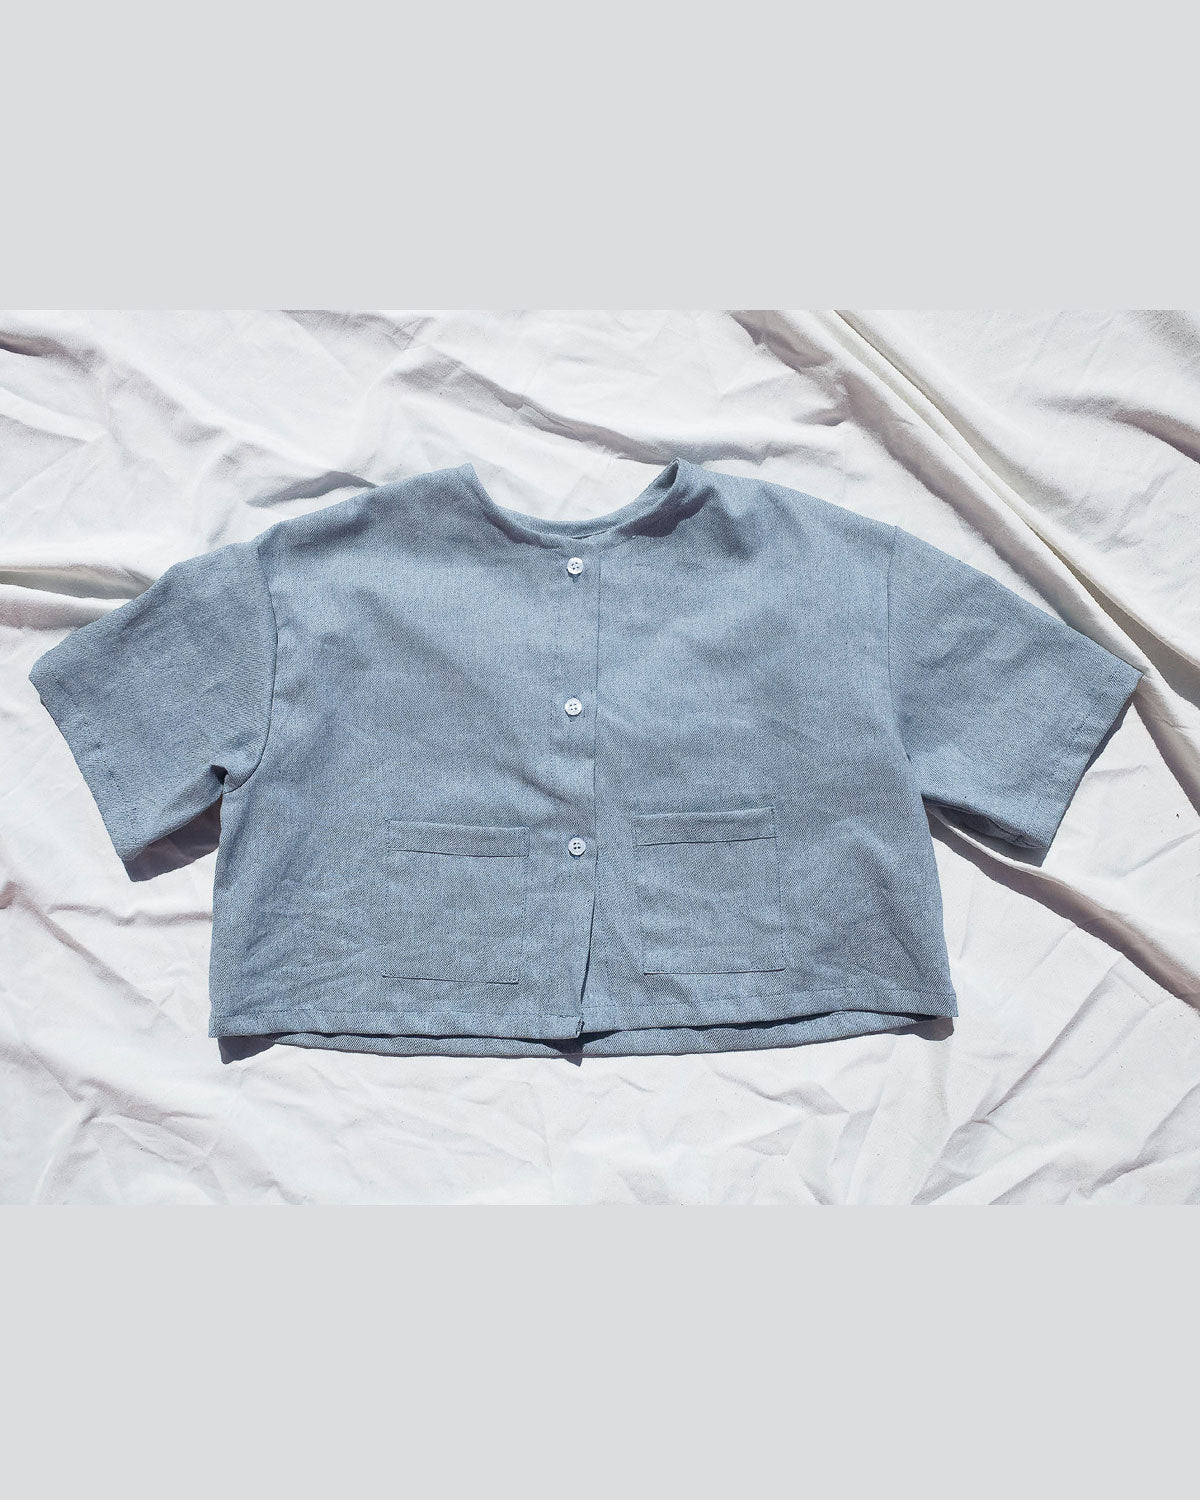 Gender neutral shirt for toddlers and kids. Premium Upcycled Denim Button Up Top with Denim Pockets